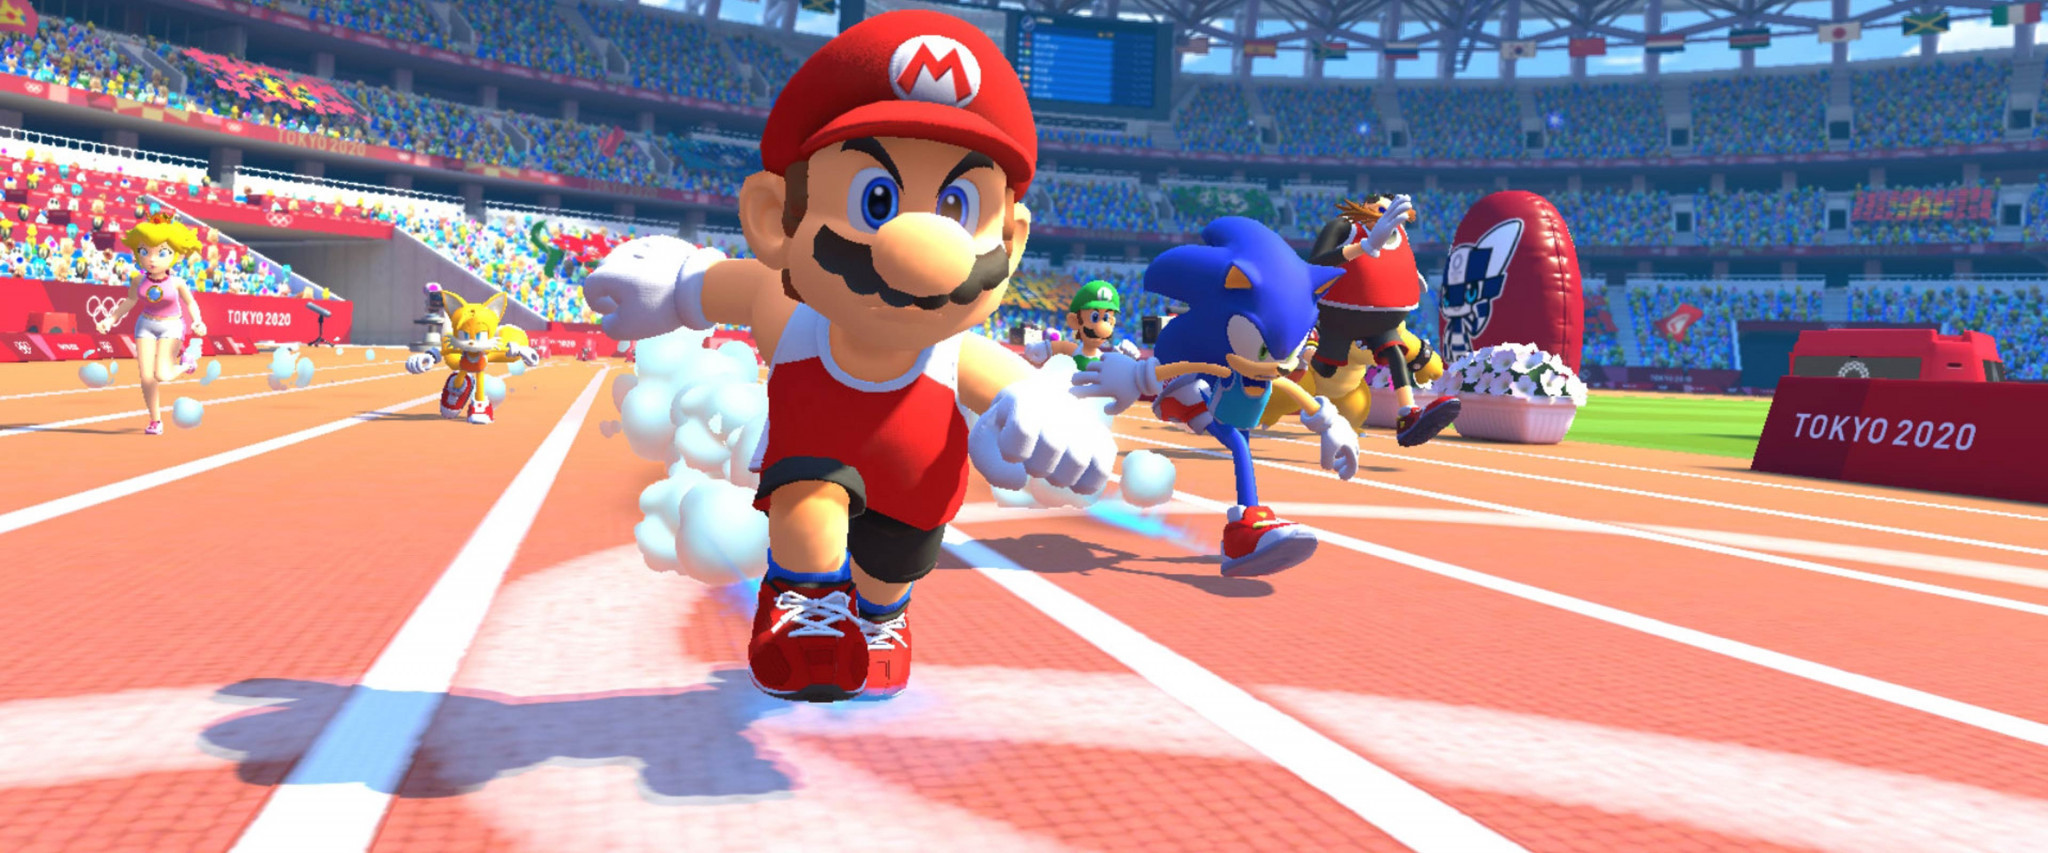 The video game Mario & Sonic at the Olympic Games Tokyo 2020 has been released today in the Americas ©Sega